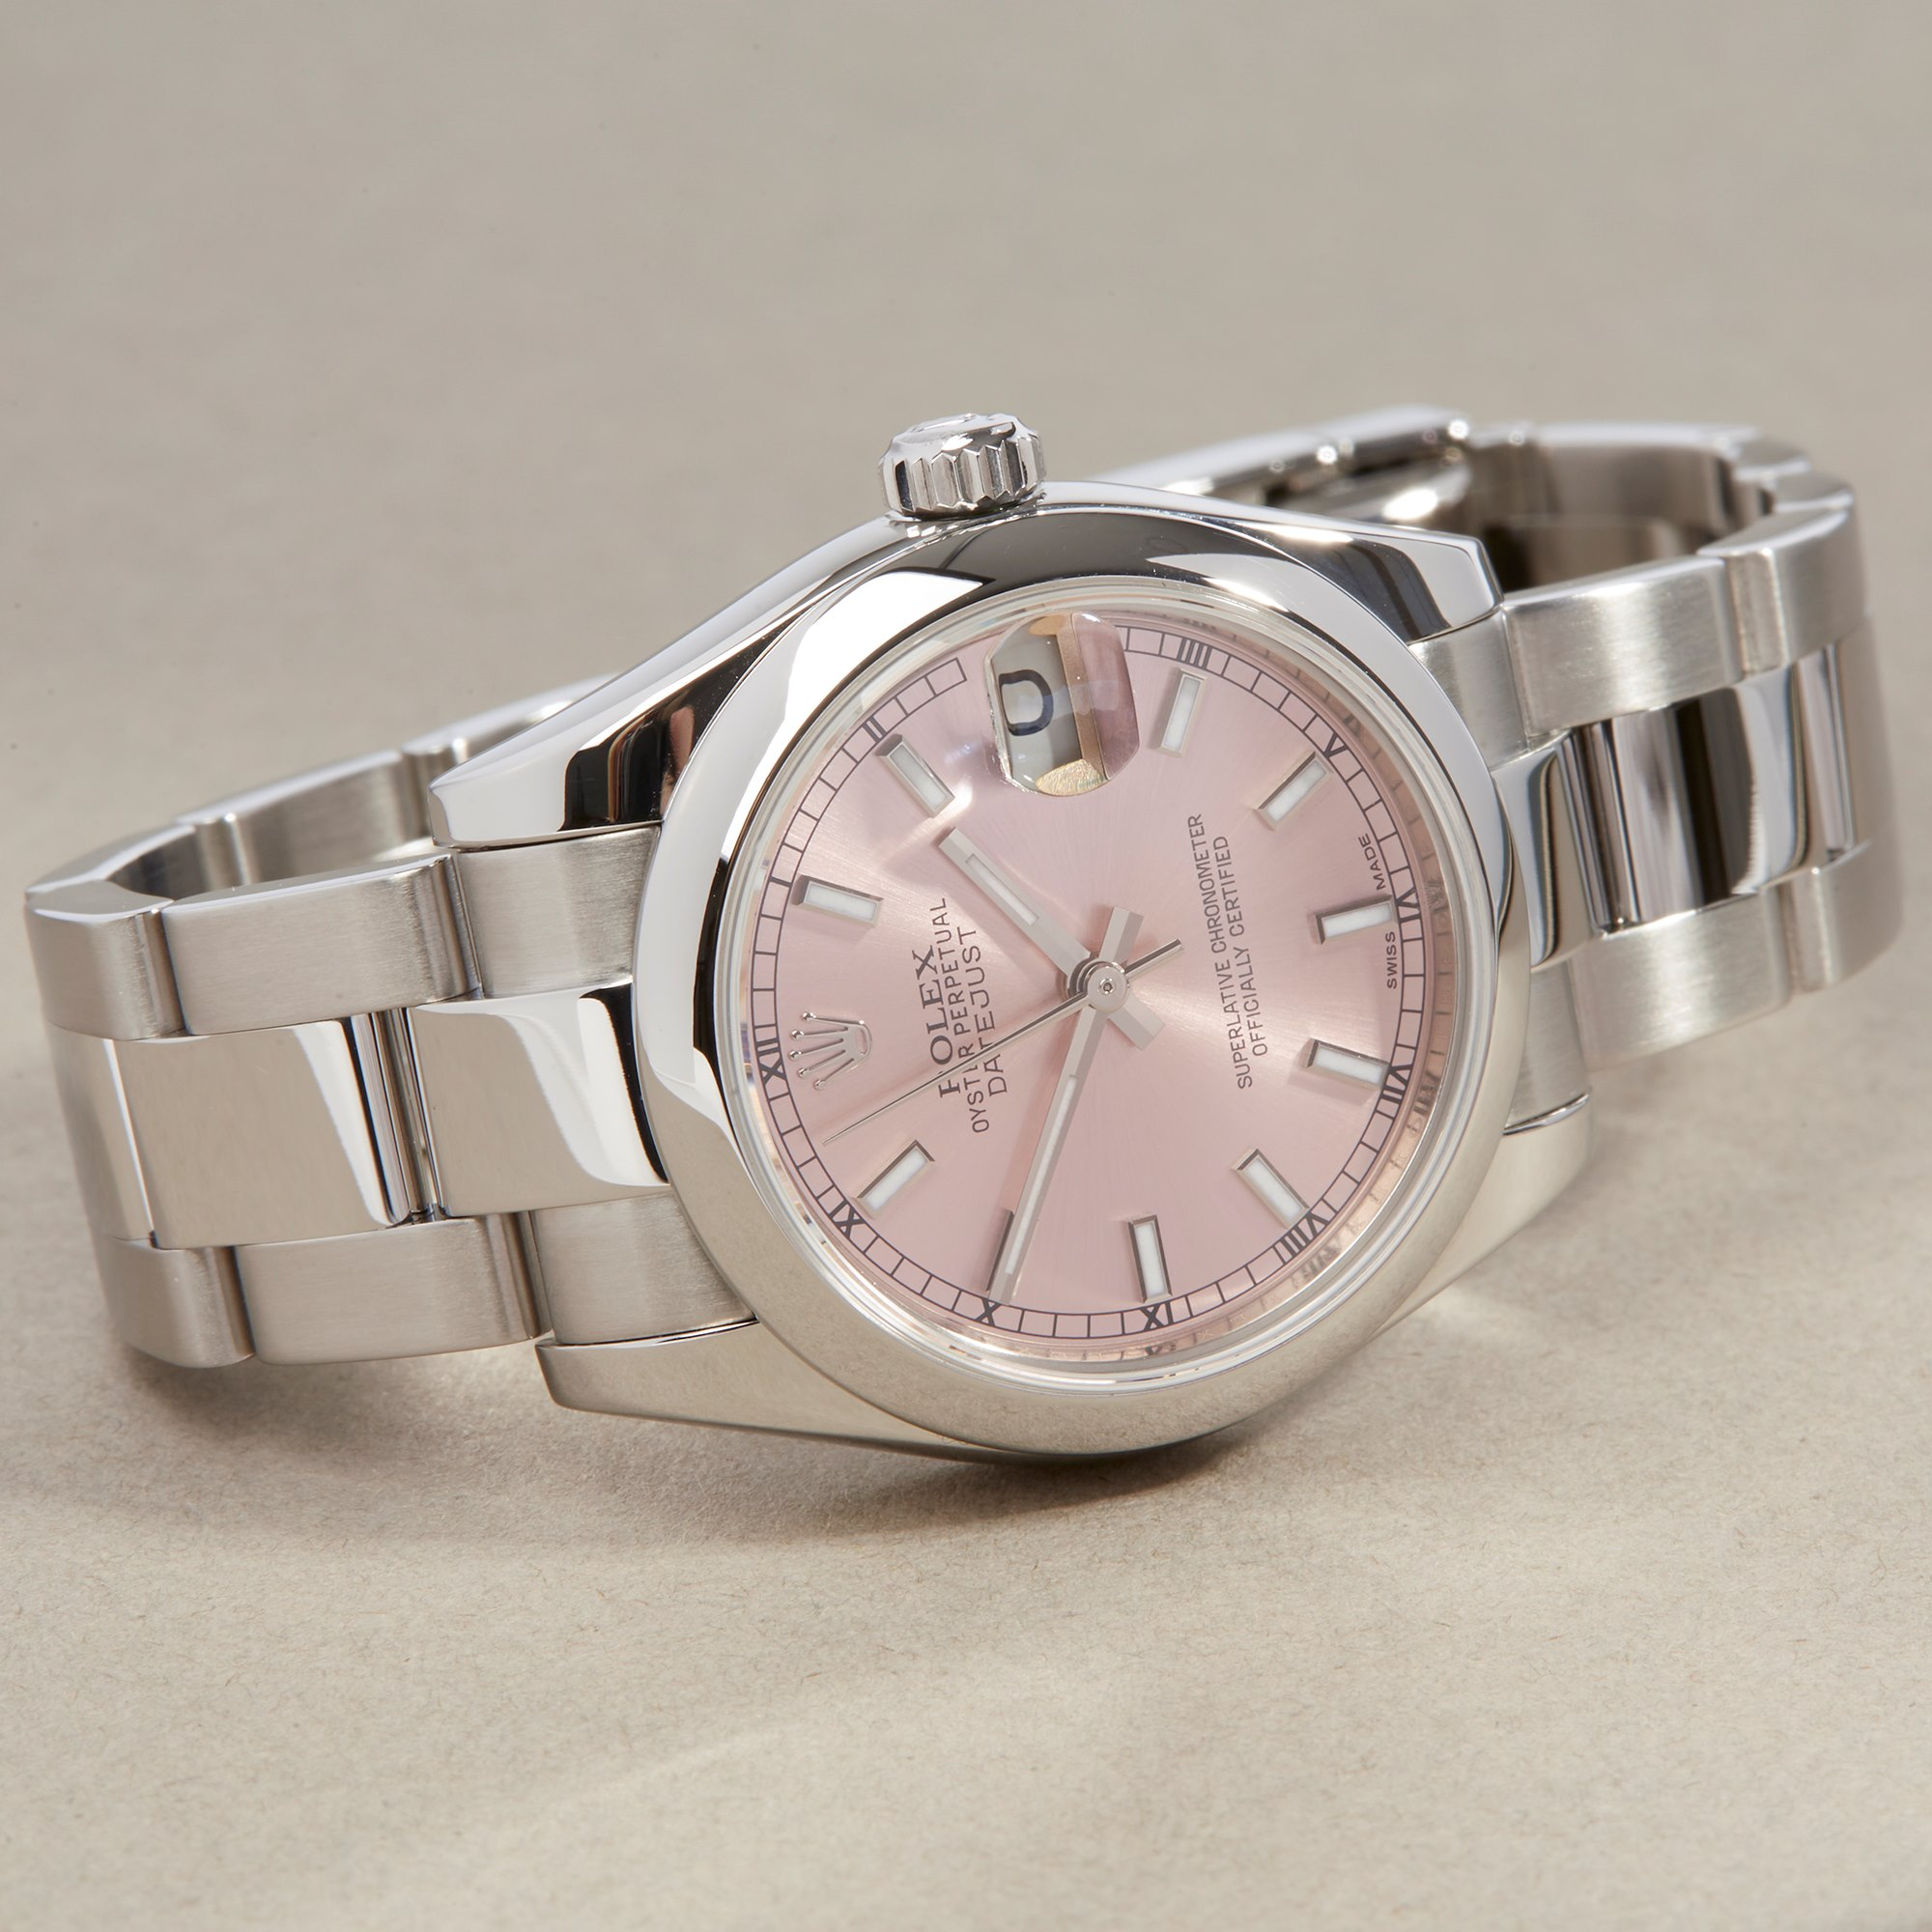 Rolex Datejust 31 Stainless Steel 178240